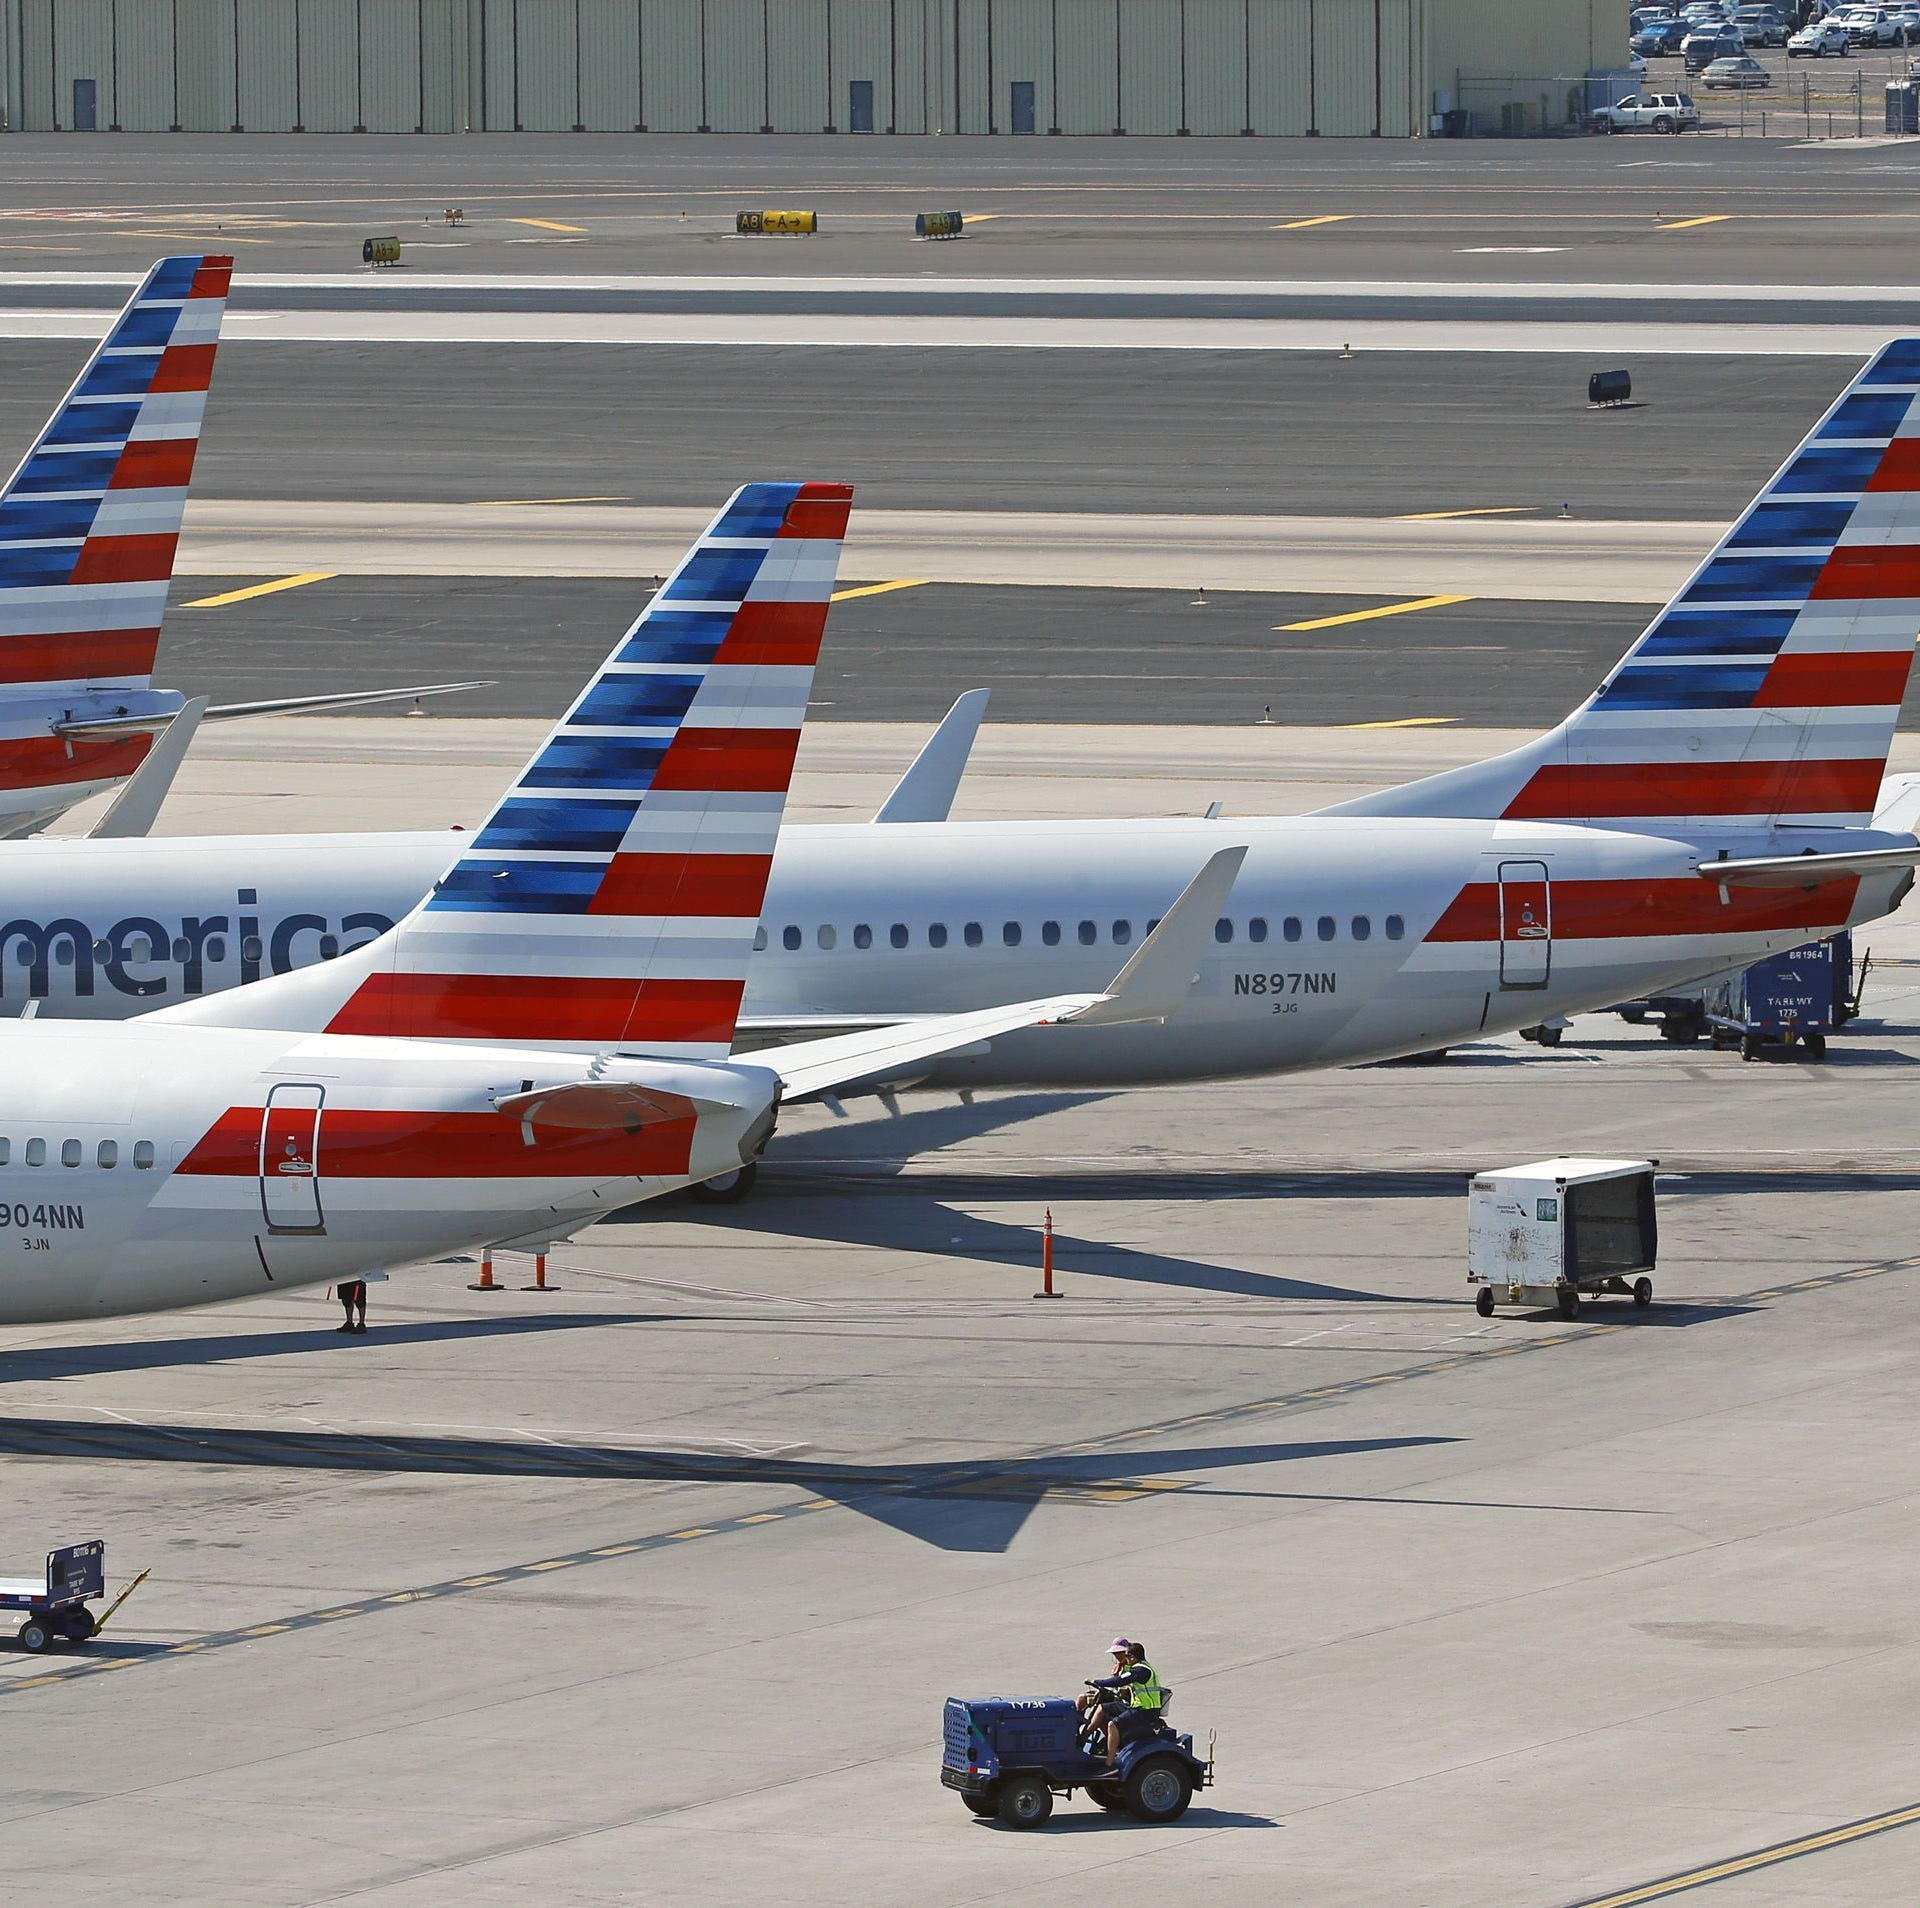 Unruly passenger attempts to run onto tarmac at Sky Harbor